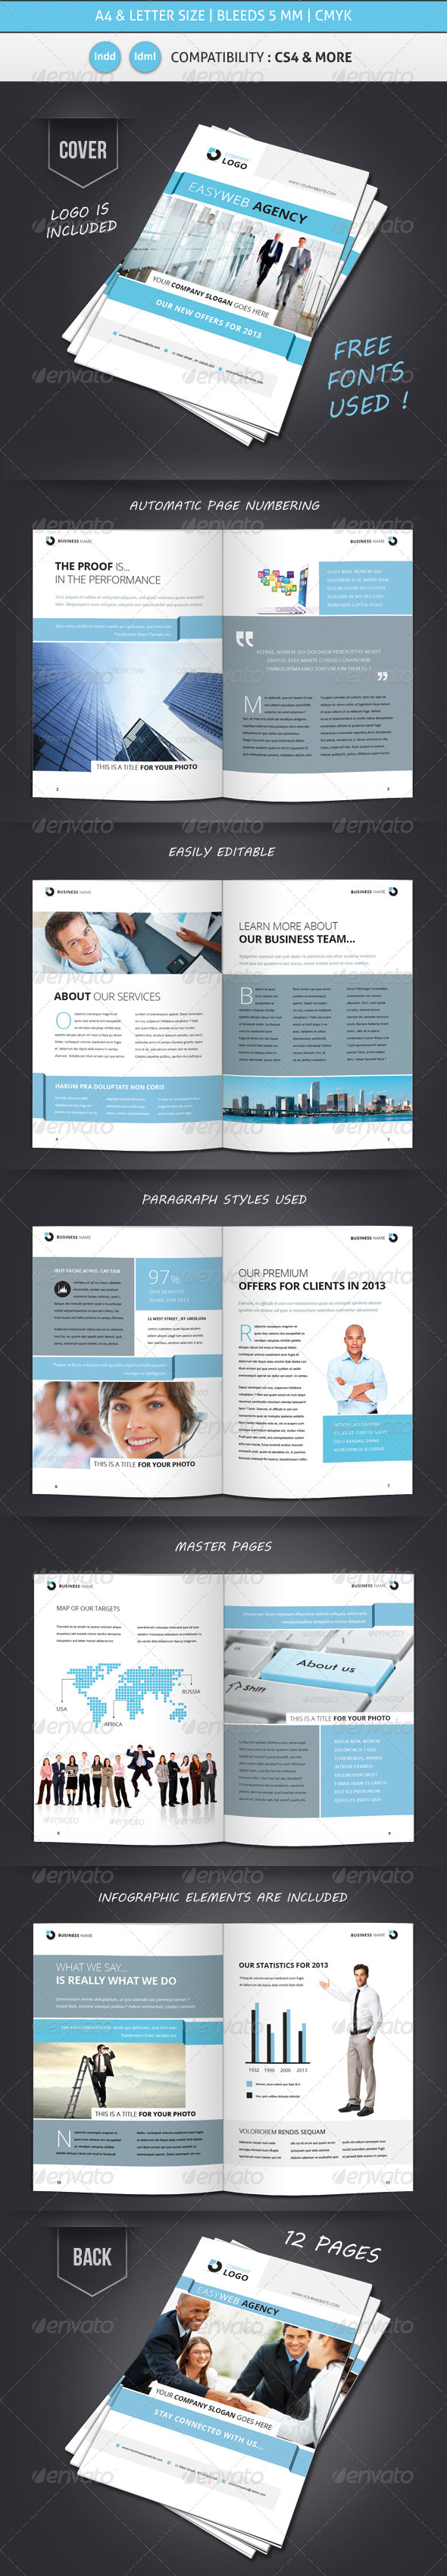 Corporate & Business Brochure Template Design - Corporate Brochures